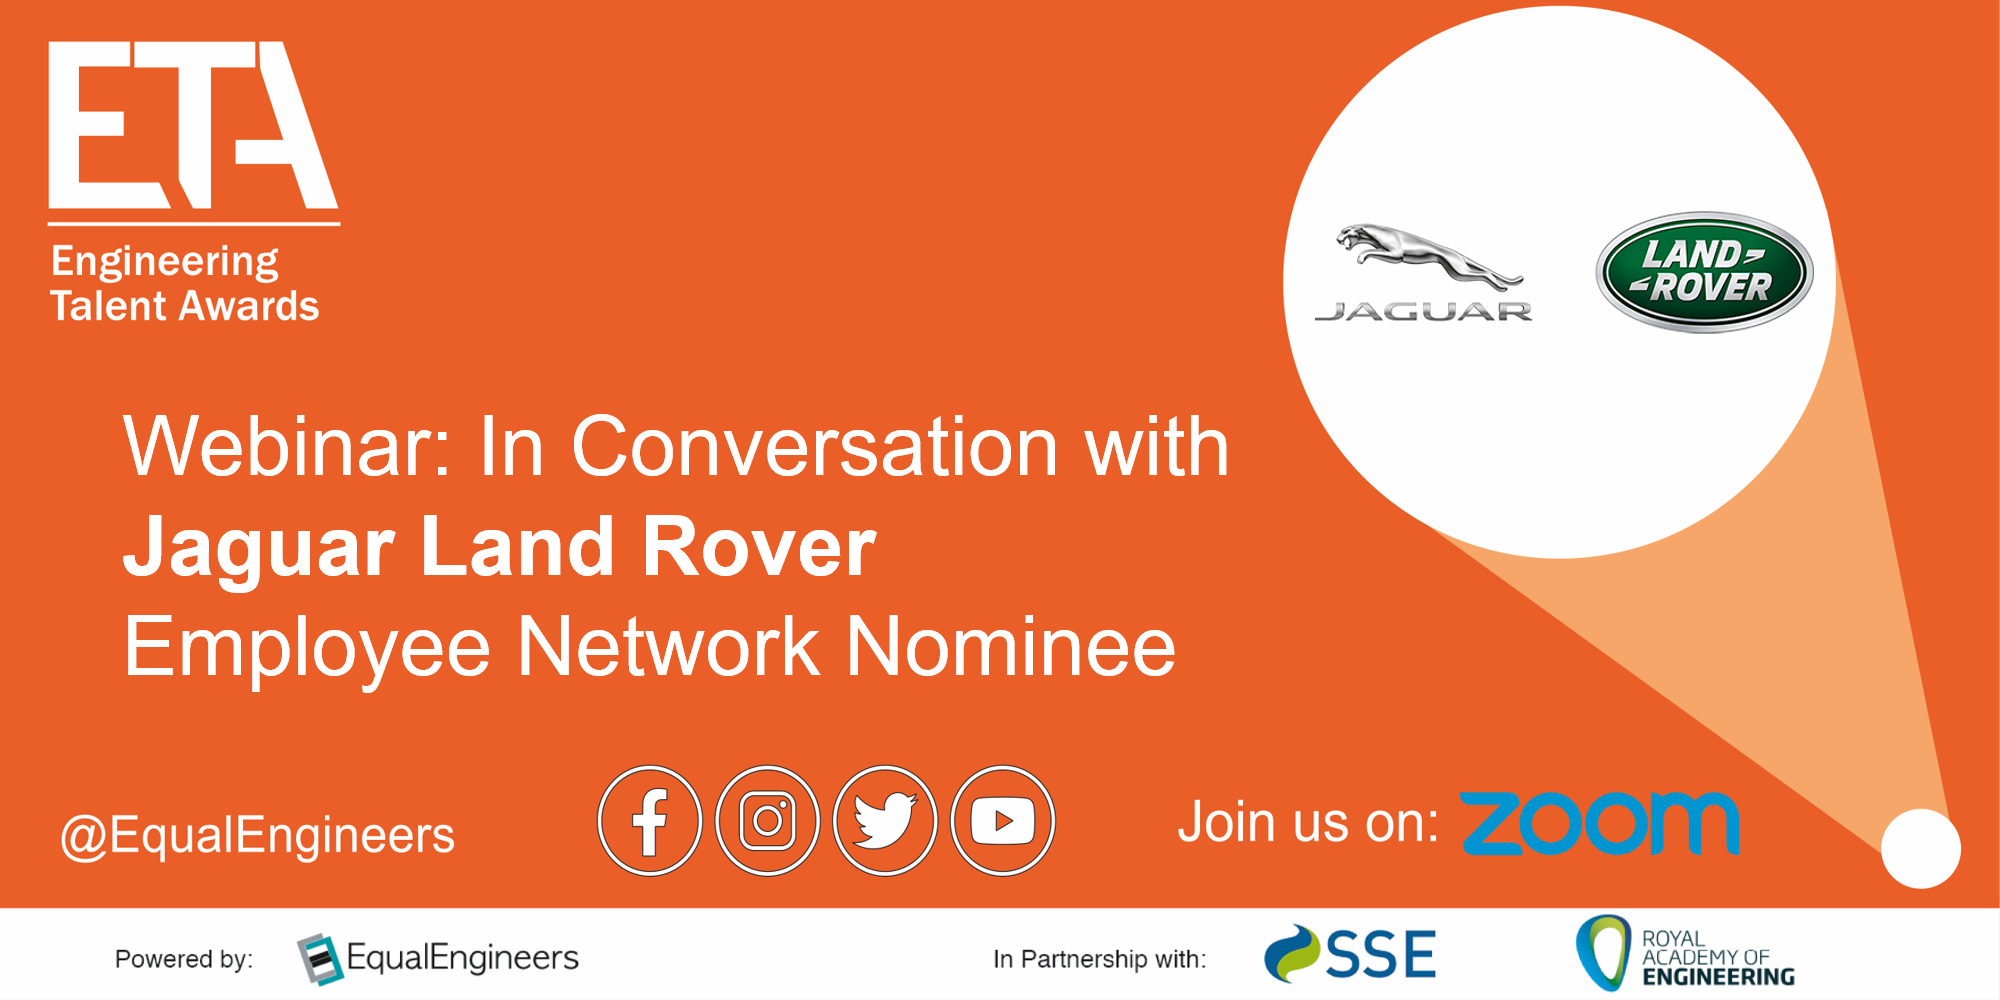 employee-network-nominee-jaguar-land-rover